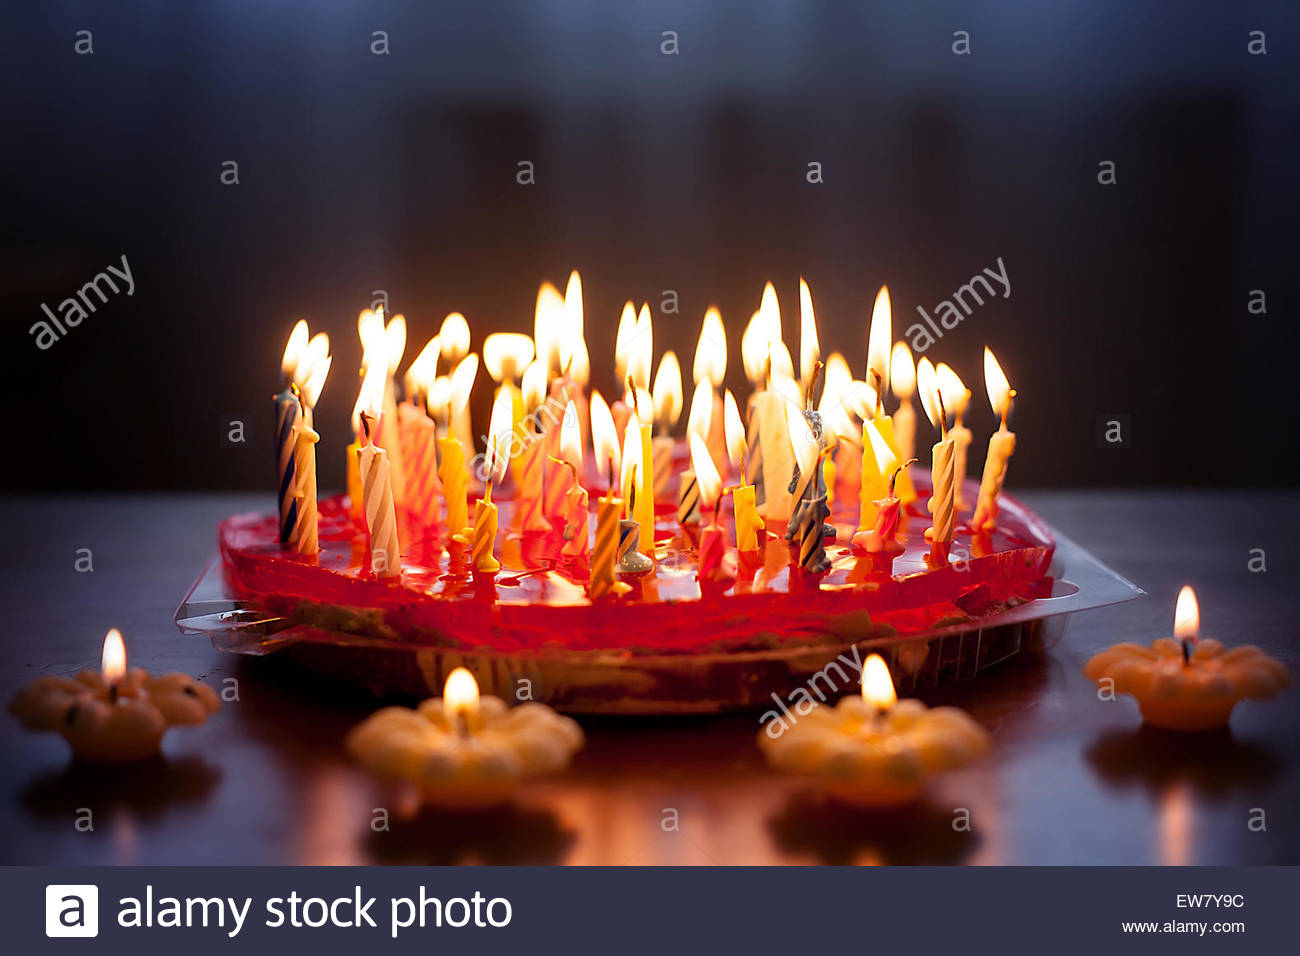 Birthday Cake With Lots Of Candles Strawberry Cake With Lots Of Candles On A Table Stock Photo